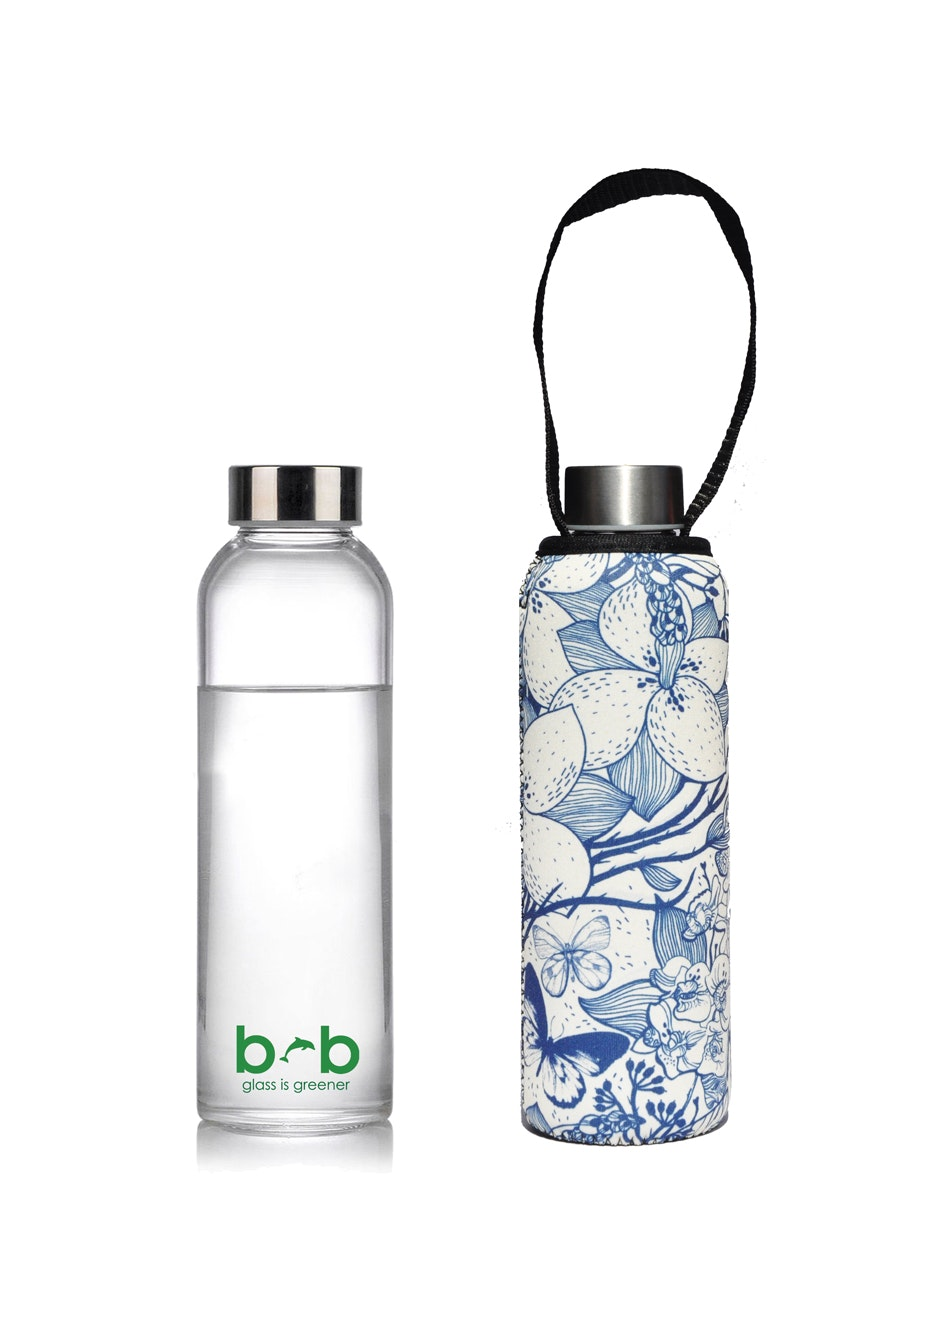 BBBYO - Glass Is Greener Bottle 570 ml + Carry Cover (Sing Print) - 570 ml